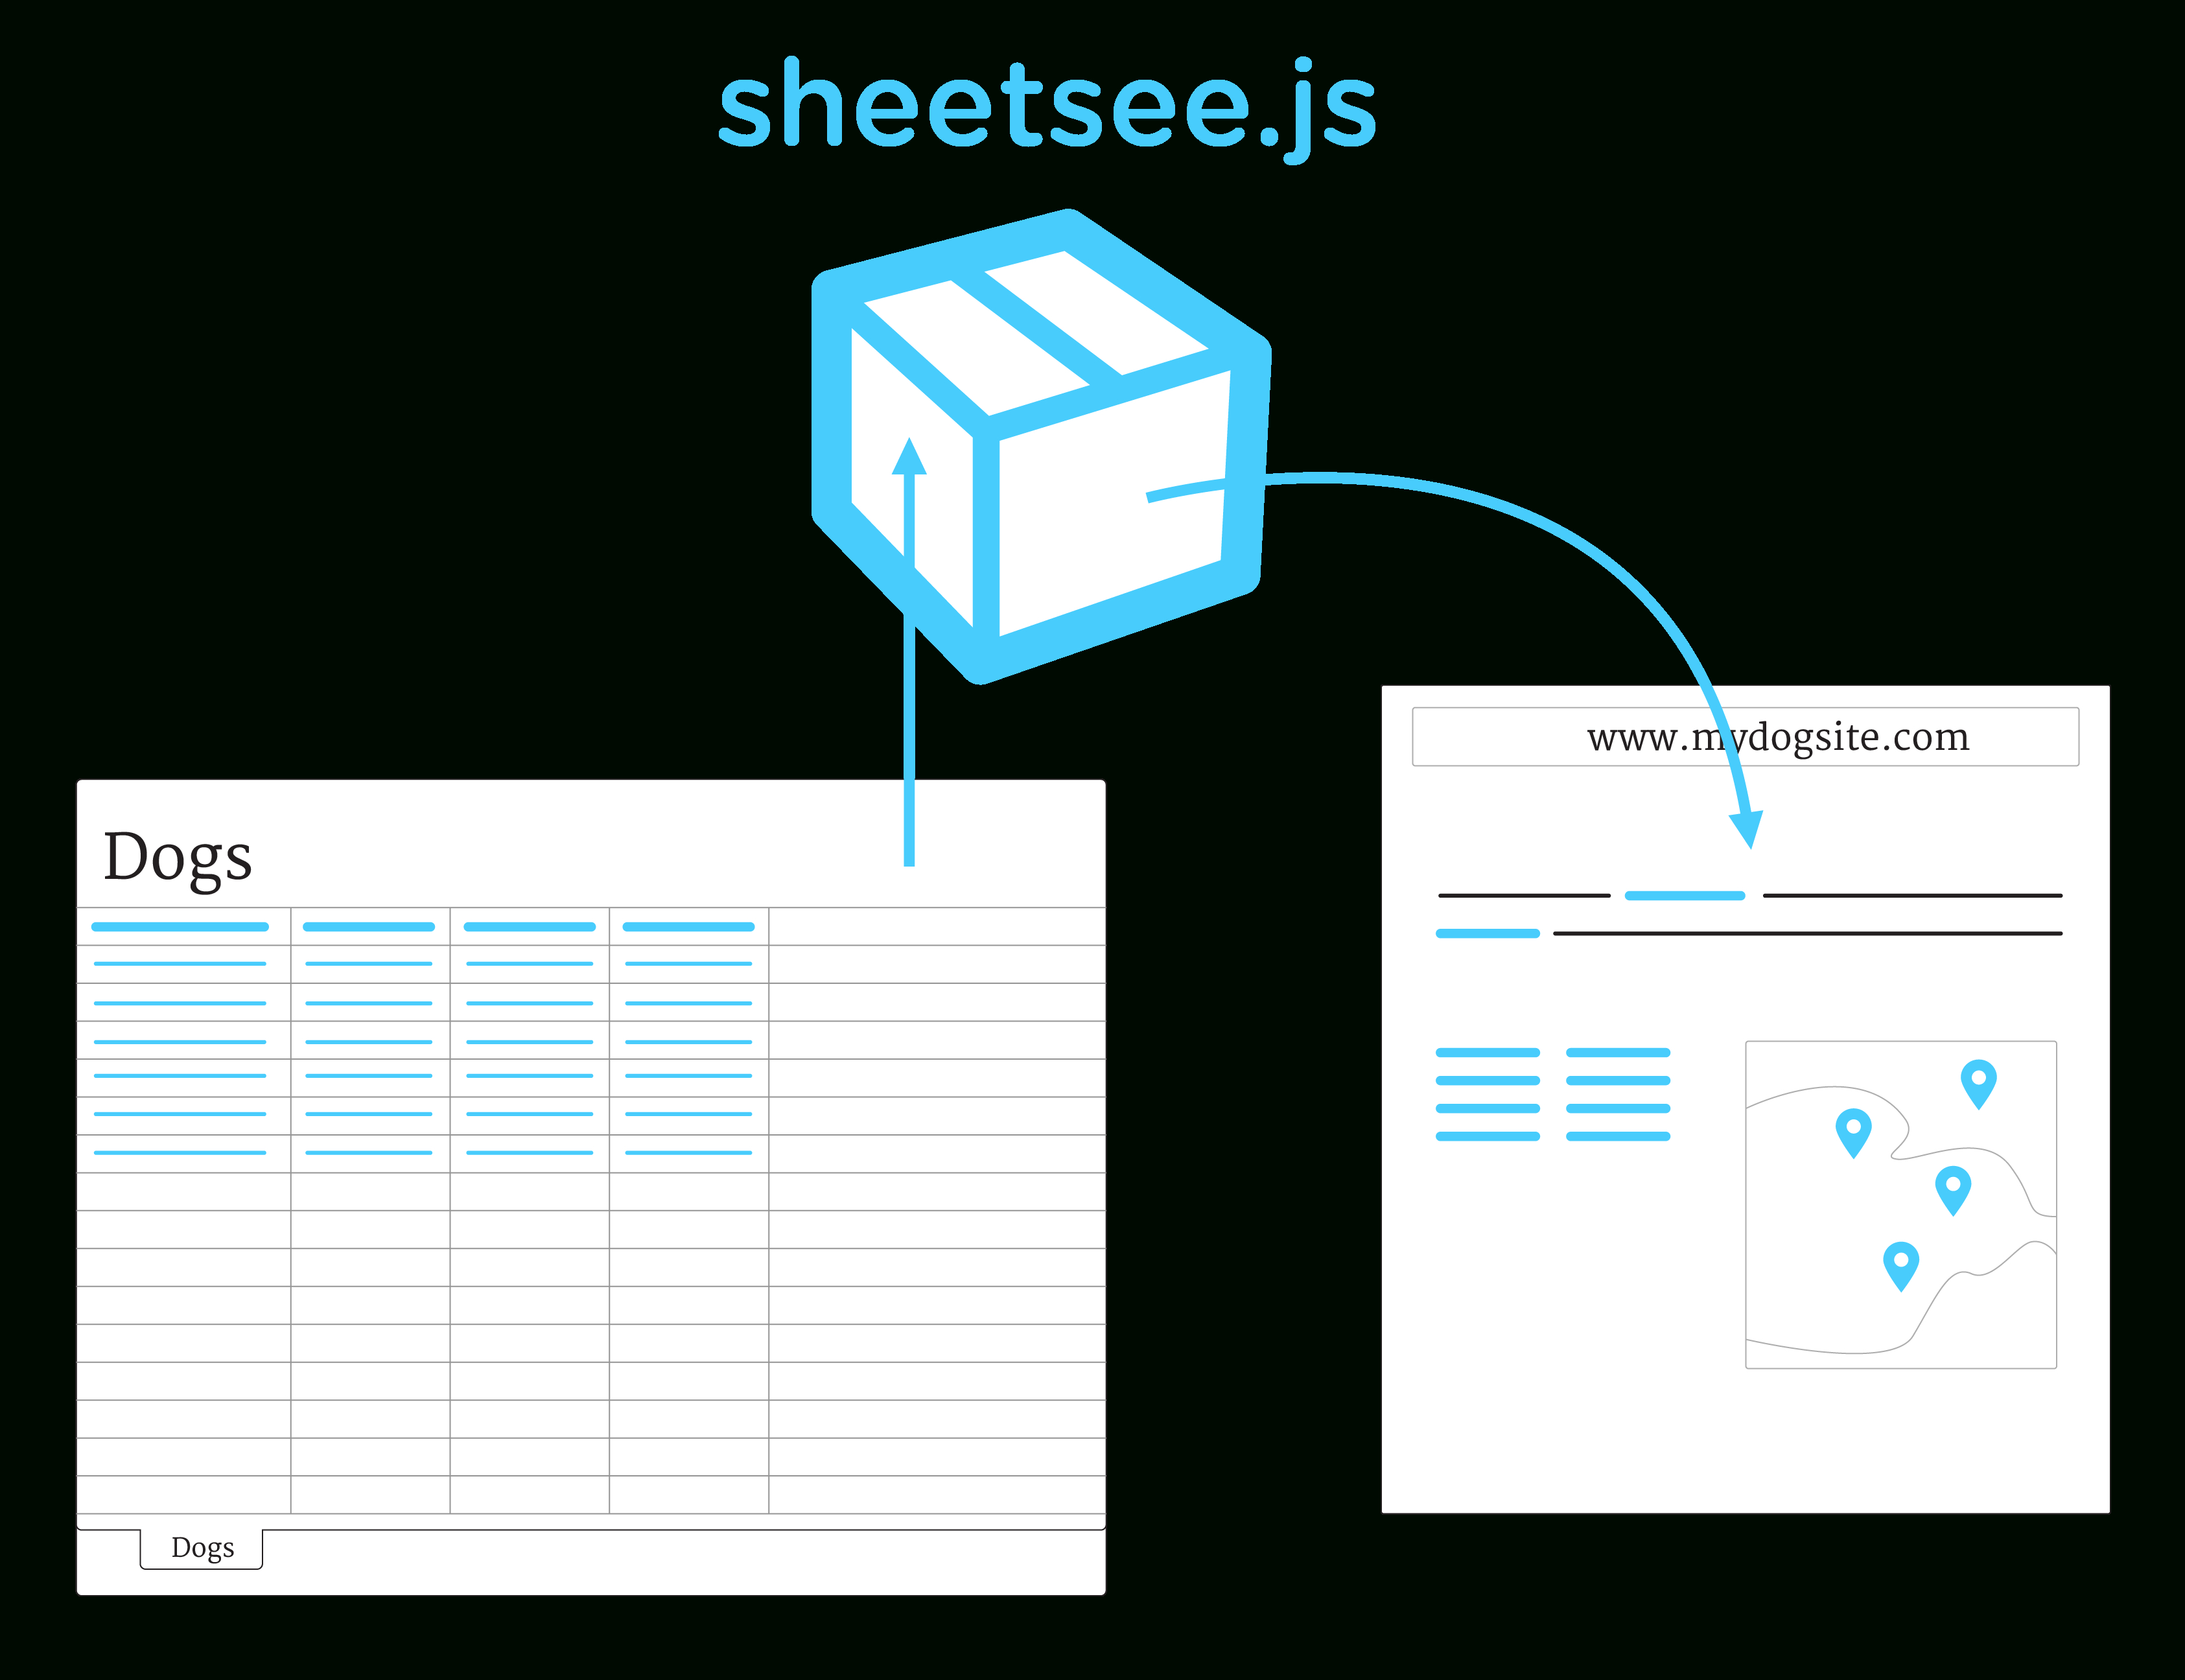 Connect Database To Google Spreadsheet Pertaining To Sheetsee.js